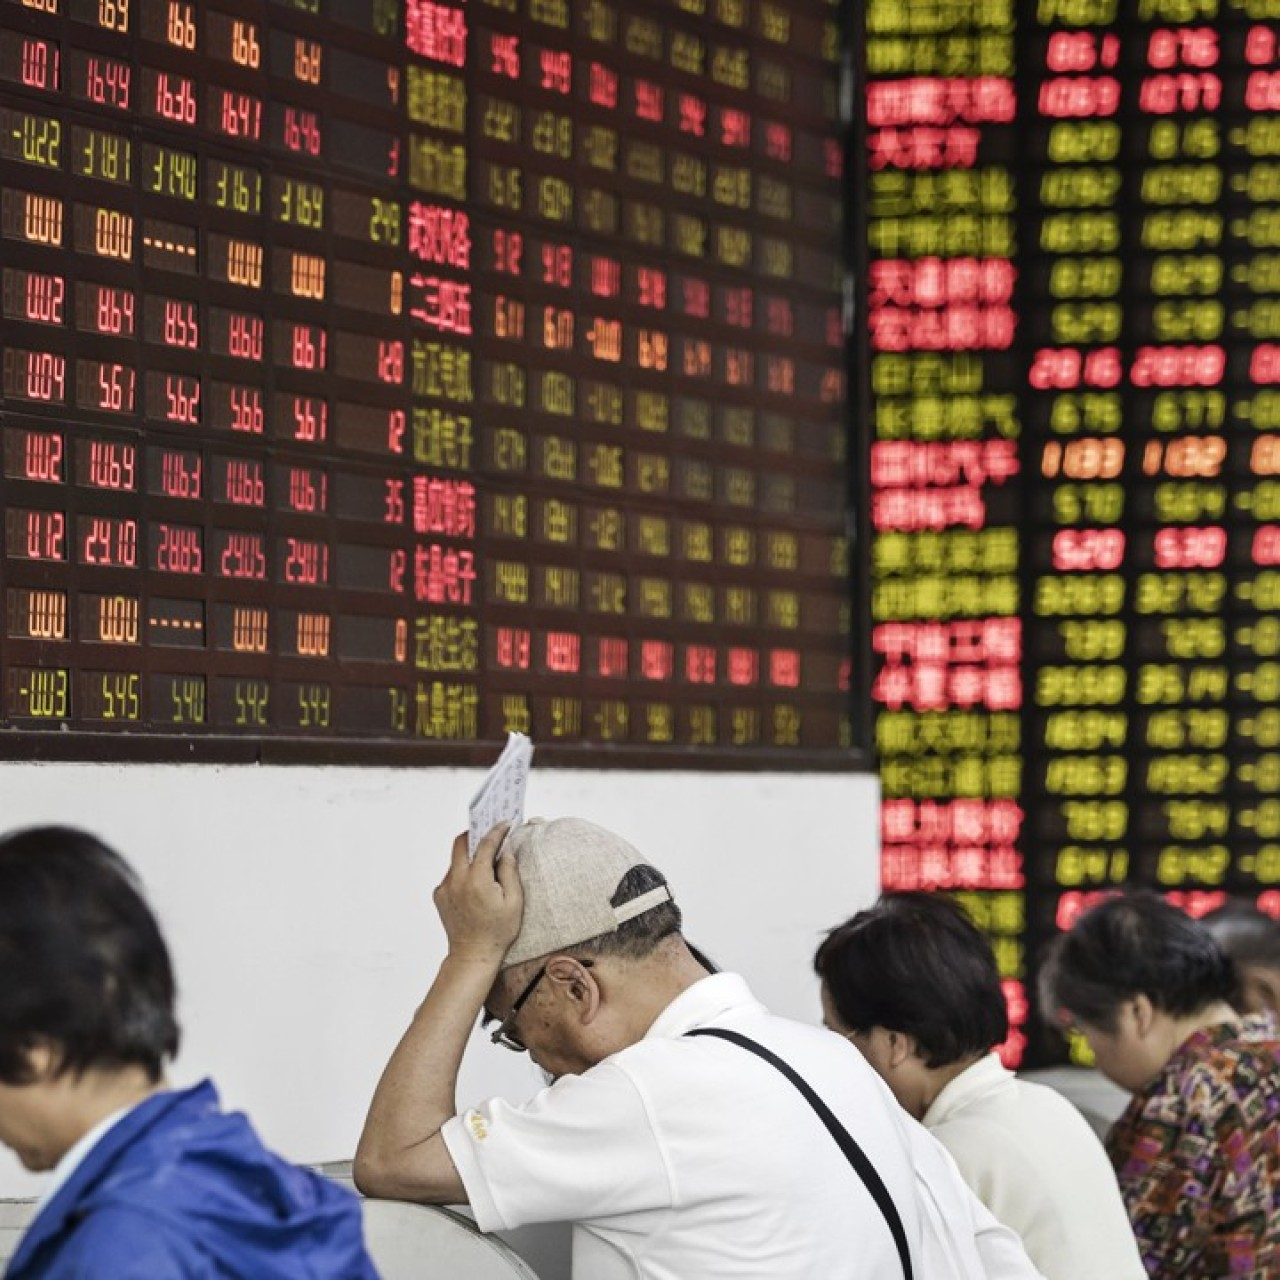 China wants local investors to have a share of the success